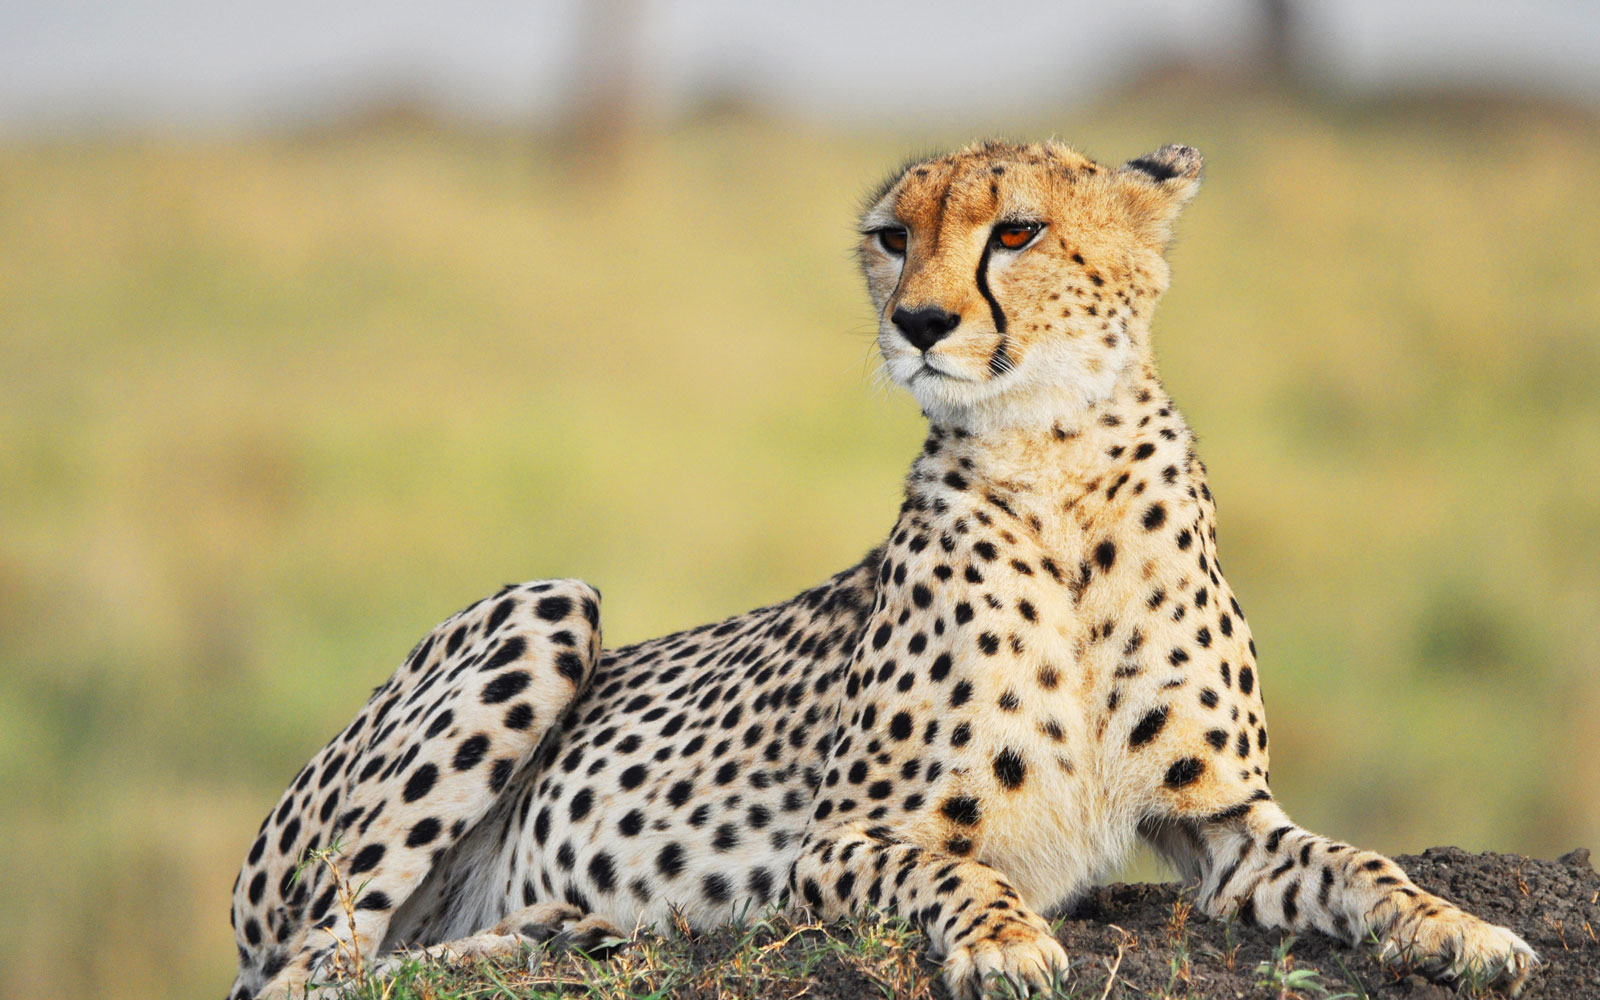 A Man on Safari Captured the Moment a Cheetah Jumped Into His Car